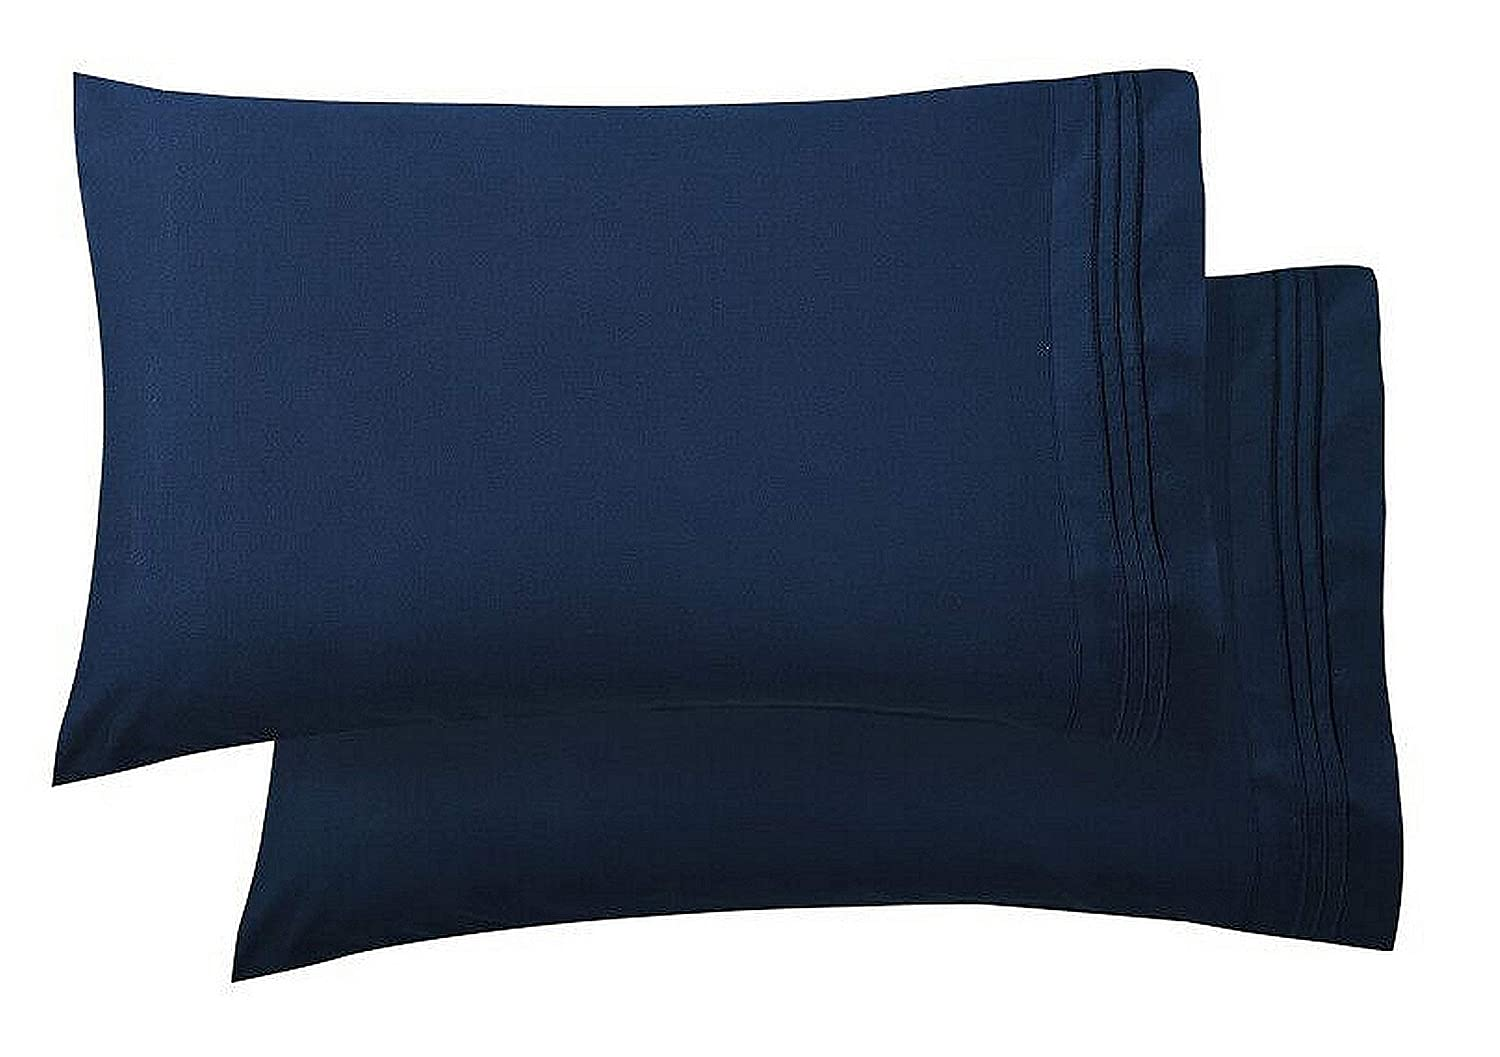 Elegant Comfort Luxury Ultra-Soft 2-Piece Pillowcase Set 1500 Thread Count Egyptian Quality Microfiber Double Brushed-100% Hypoallergenic-Wrinkle Resistant, Standard/Queen Size, Navy Blue